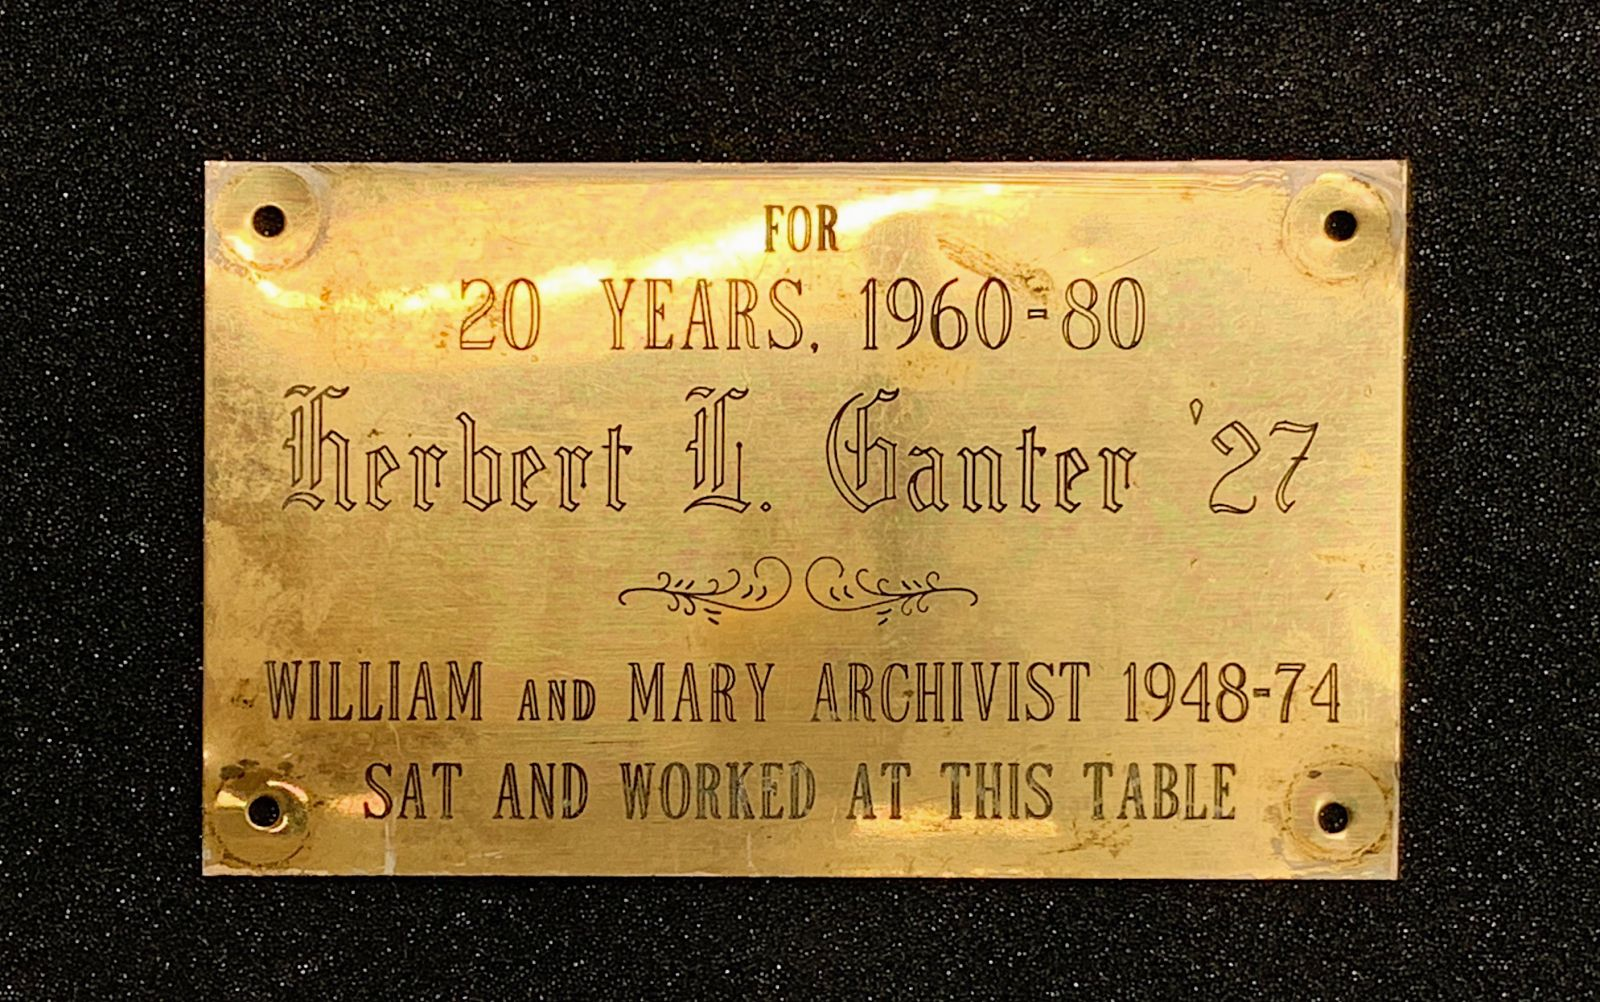 "Gold-colored plaque that reads, ""For / 20 Years, 1960-80 / Herbert L. Ganter '27 / William and Mary Archivist 1948-74 / Sat and Worked at the Table"""